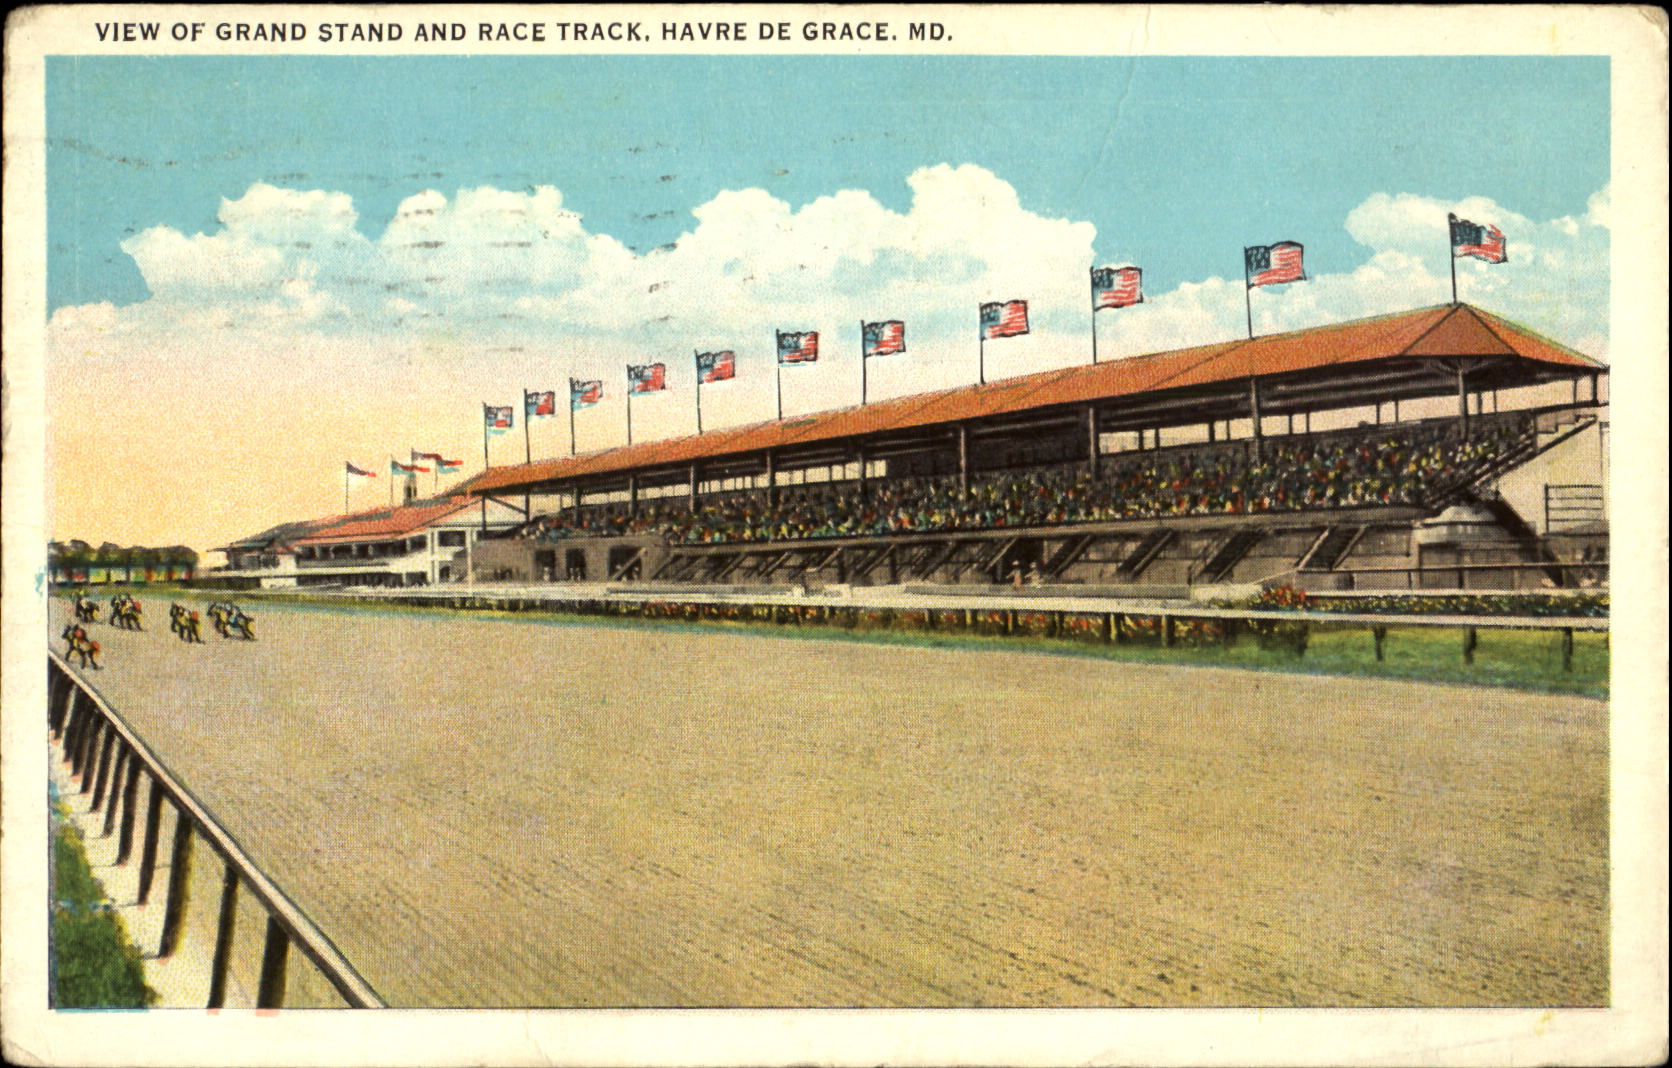 A postcard depicting Havre de Grace racetrack in the 1930s. The track operated from 1912 to 1952